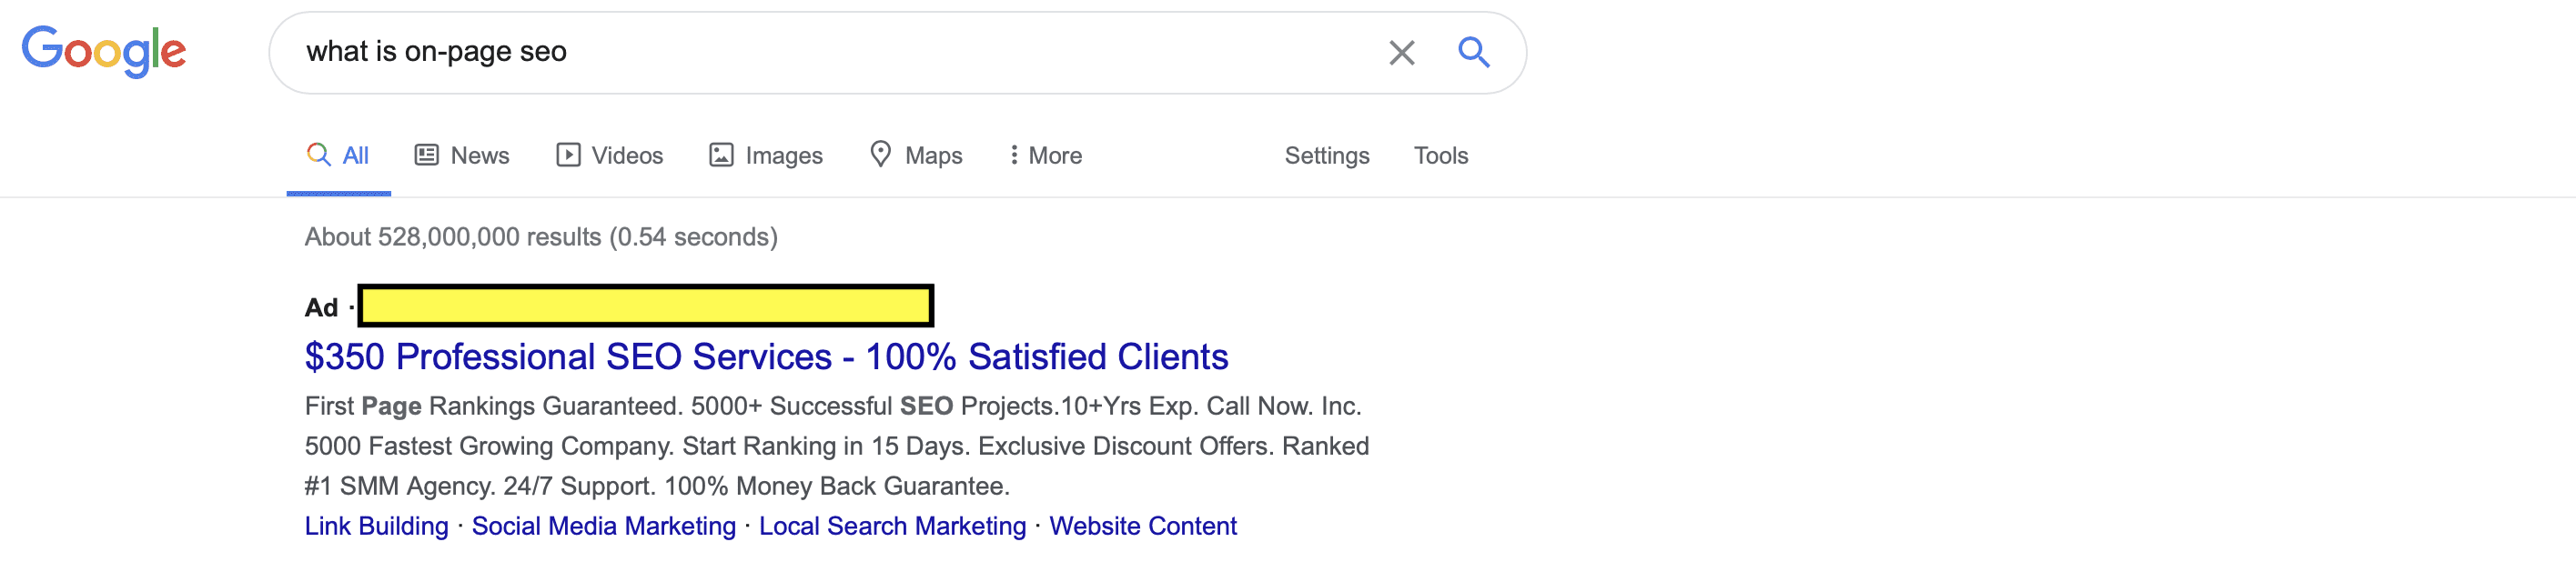 picture of a SEO ad